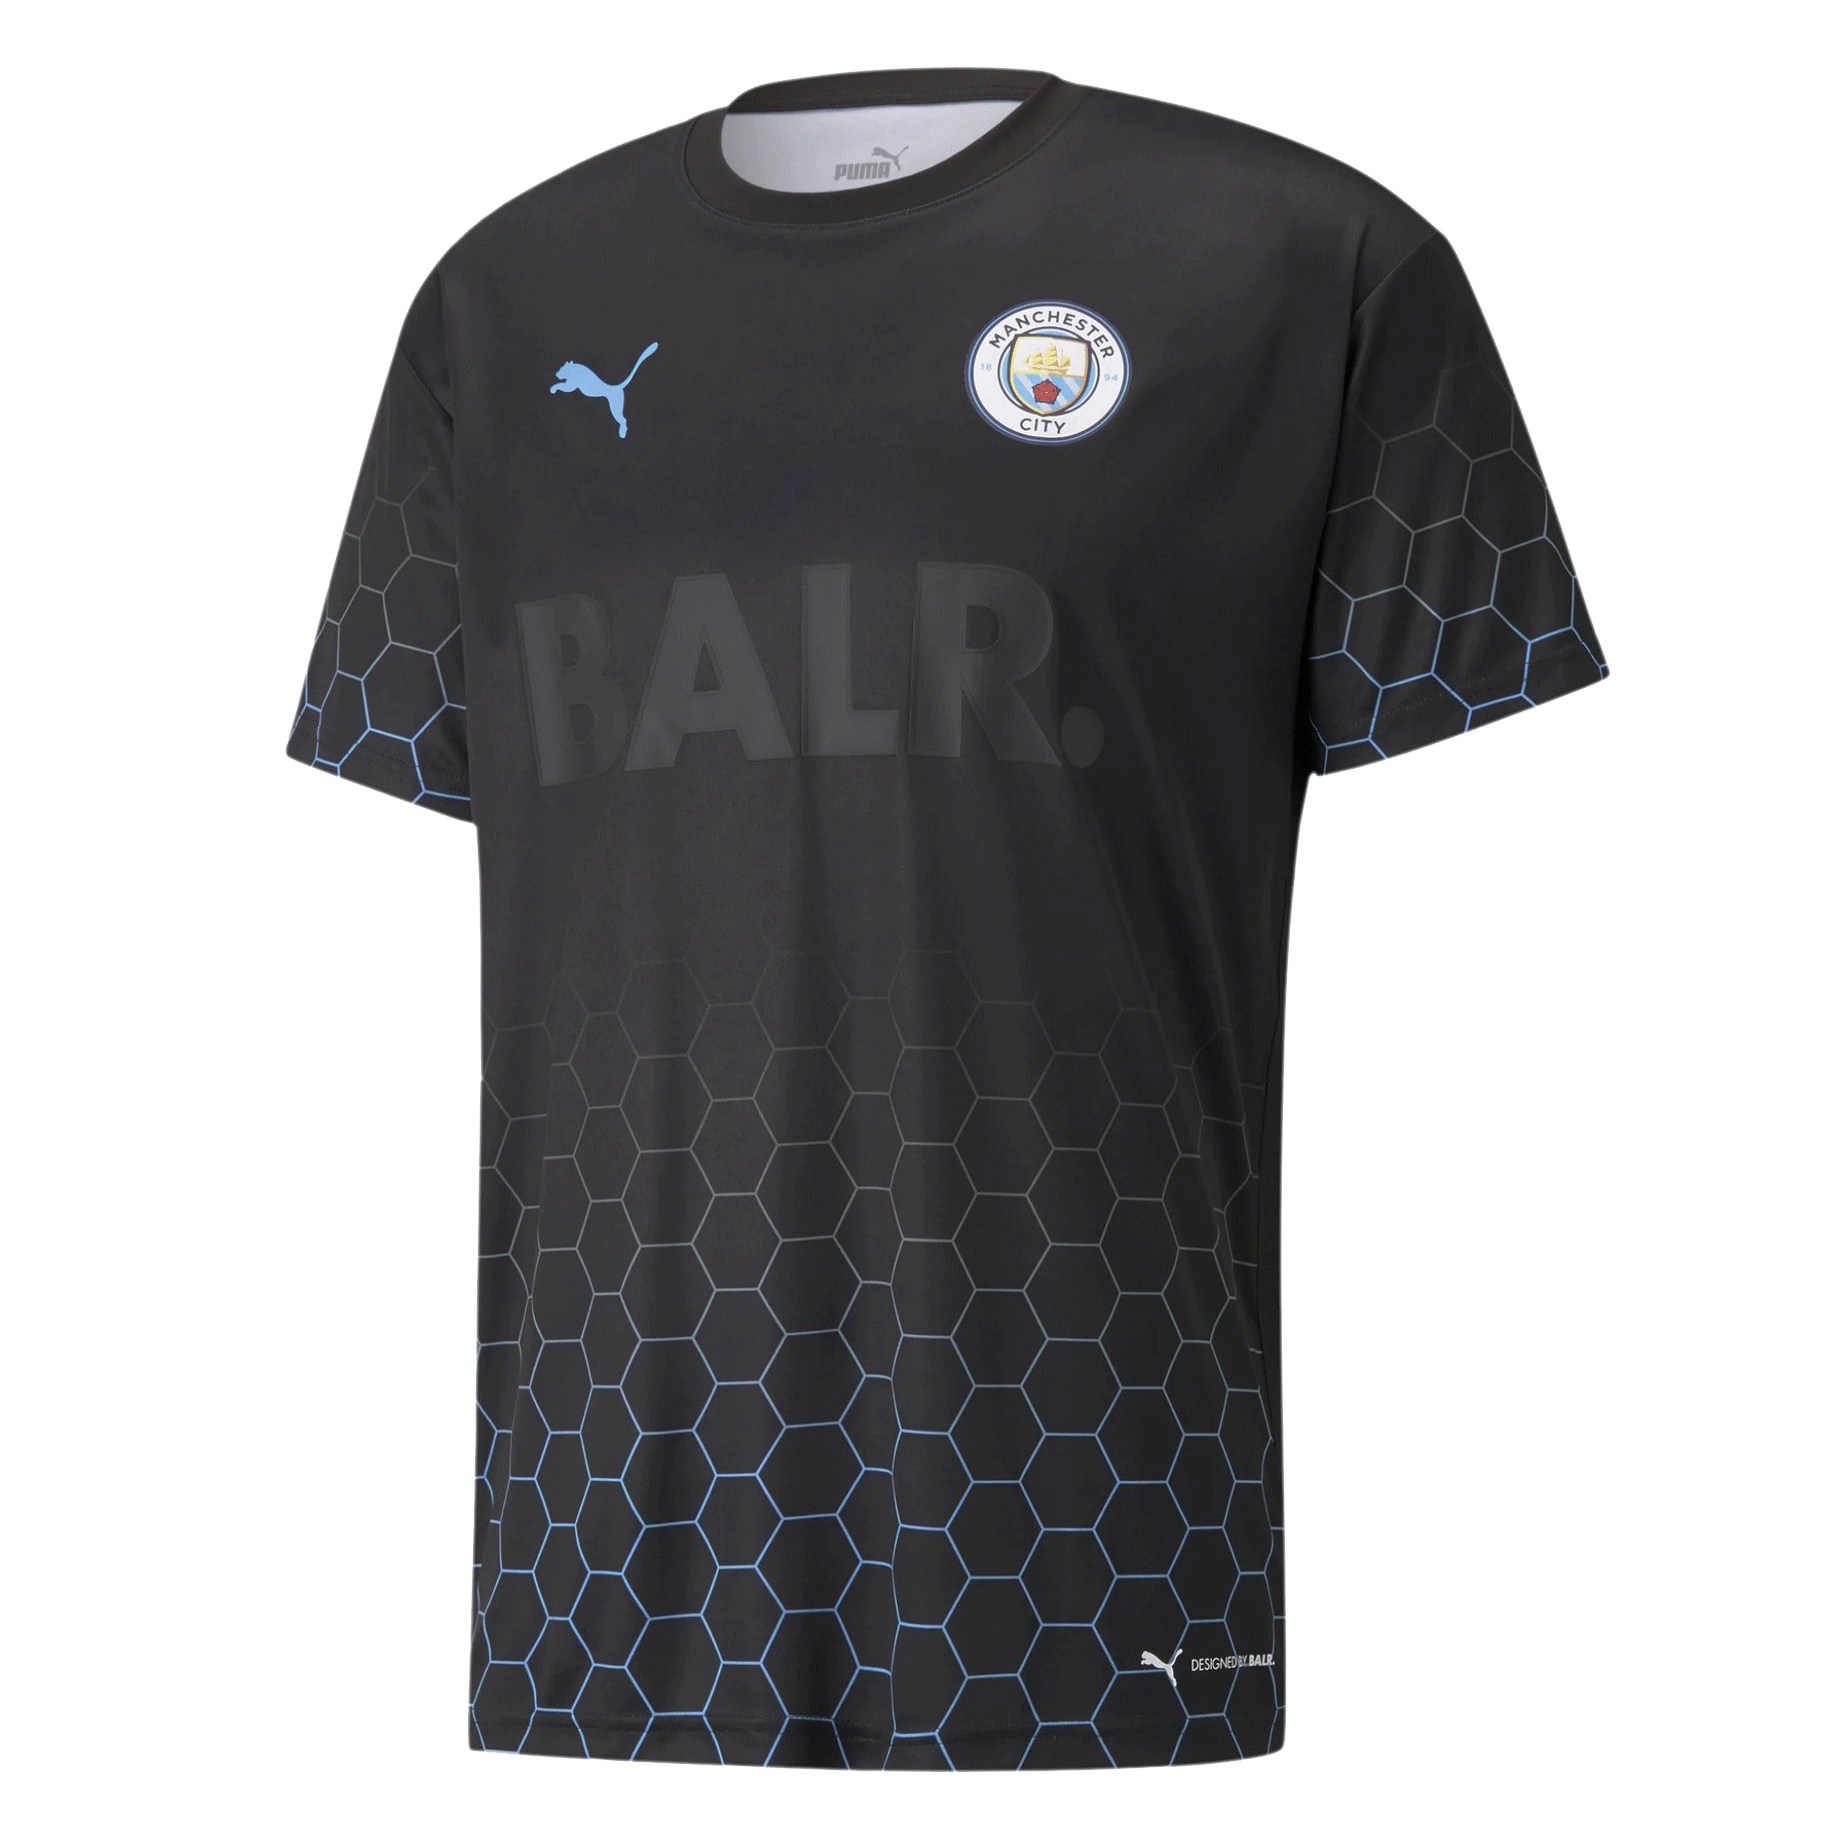 Manchester City X BALR Signature Men's Soccer Jersey Black Soccer Shirt